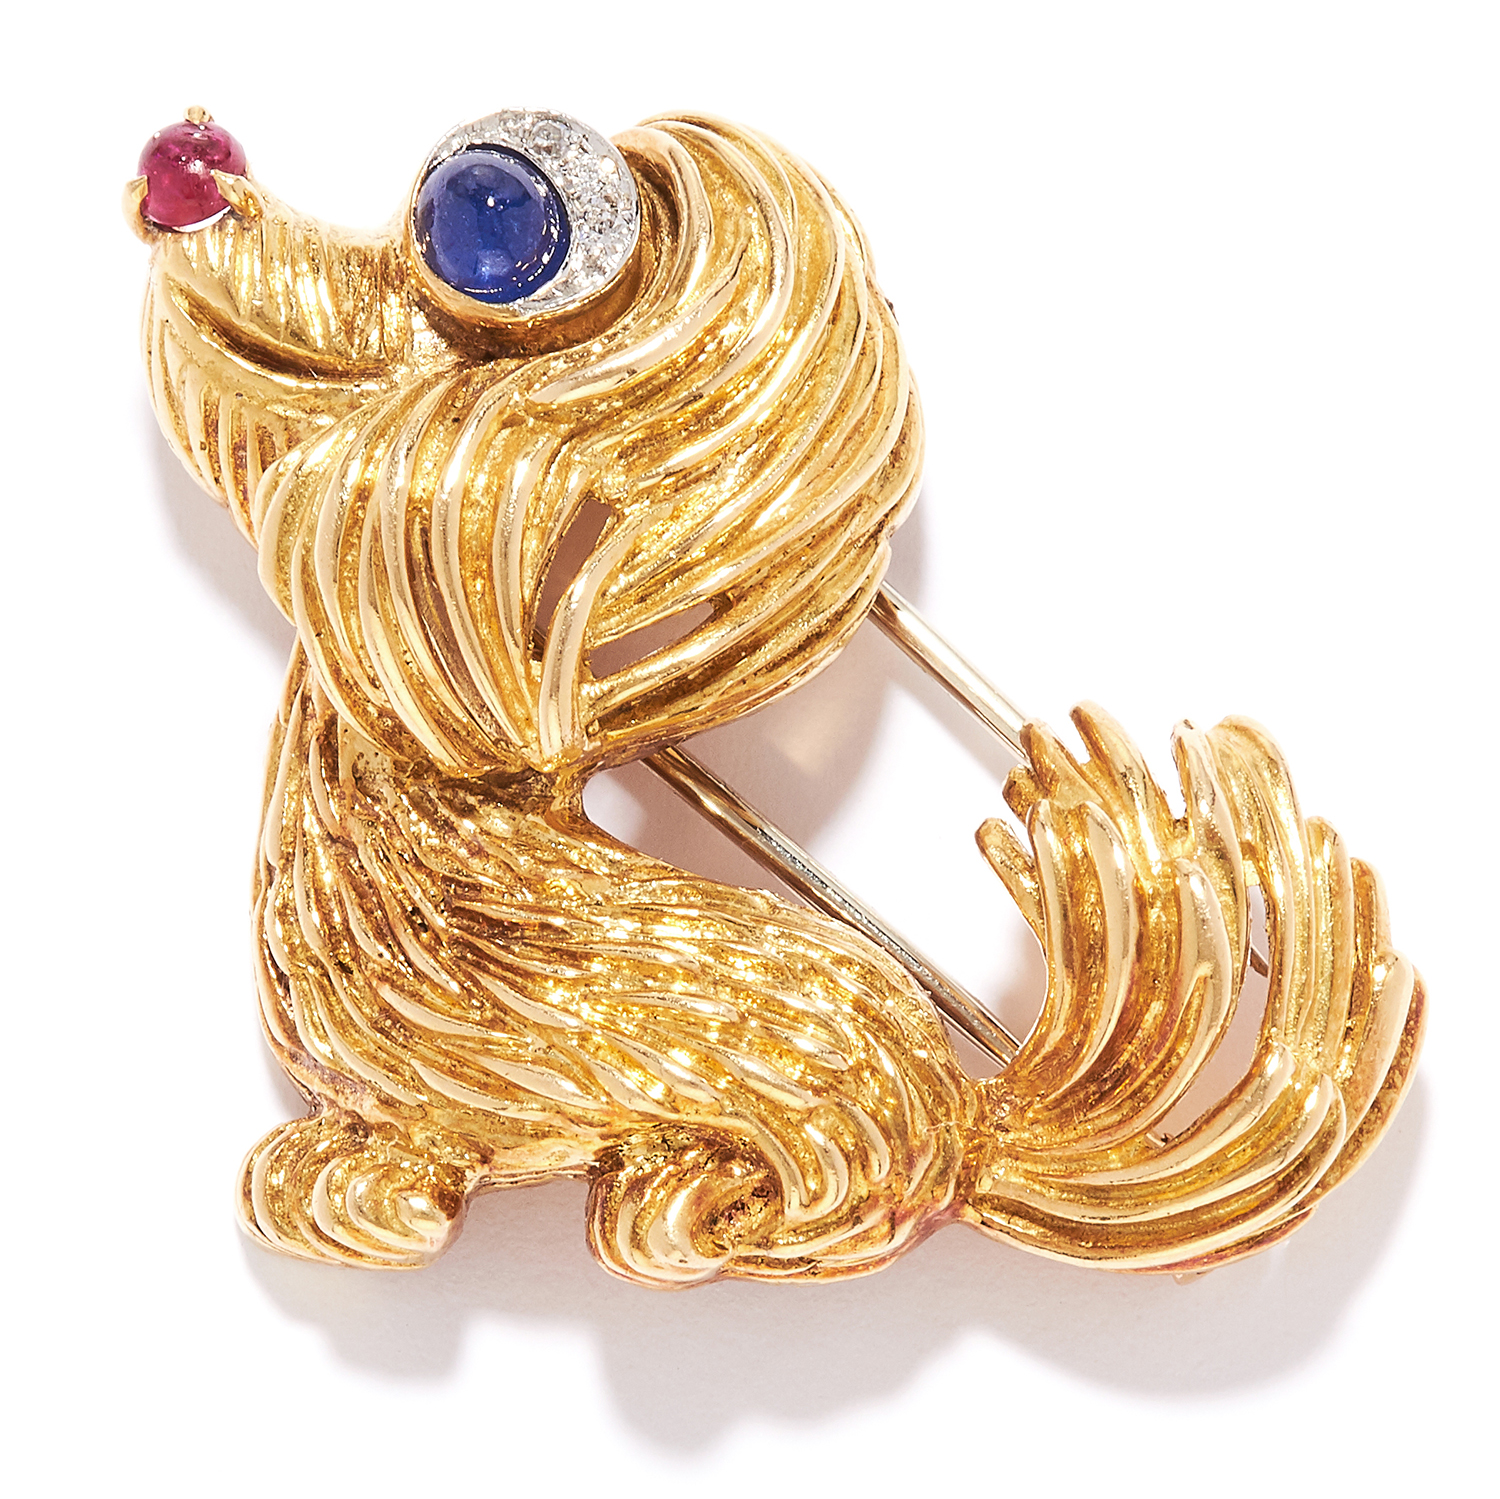 RUBY, SAPPHIRE AND DIAMOND NOVELTY DOG BROOCH in high carat yellow gold, depicting a dog, set with a